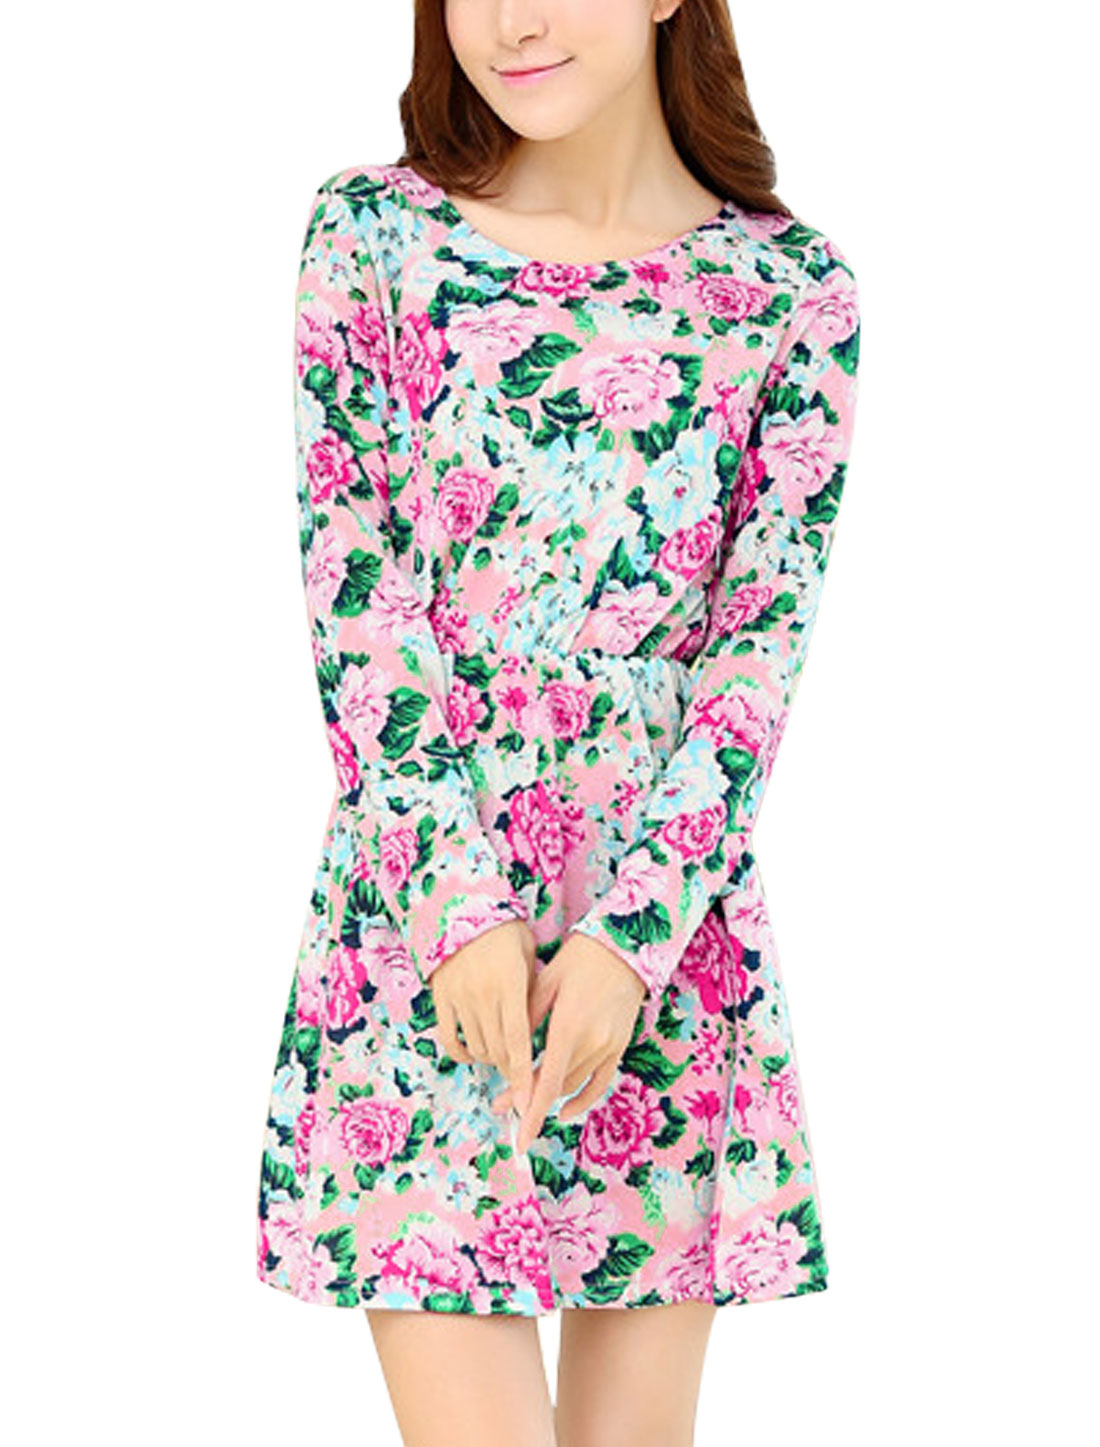 Lady Floral Pattern Elastic Waist Style Casual Dress Blue Pink XS